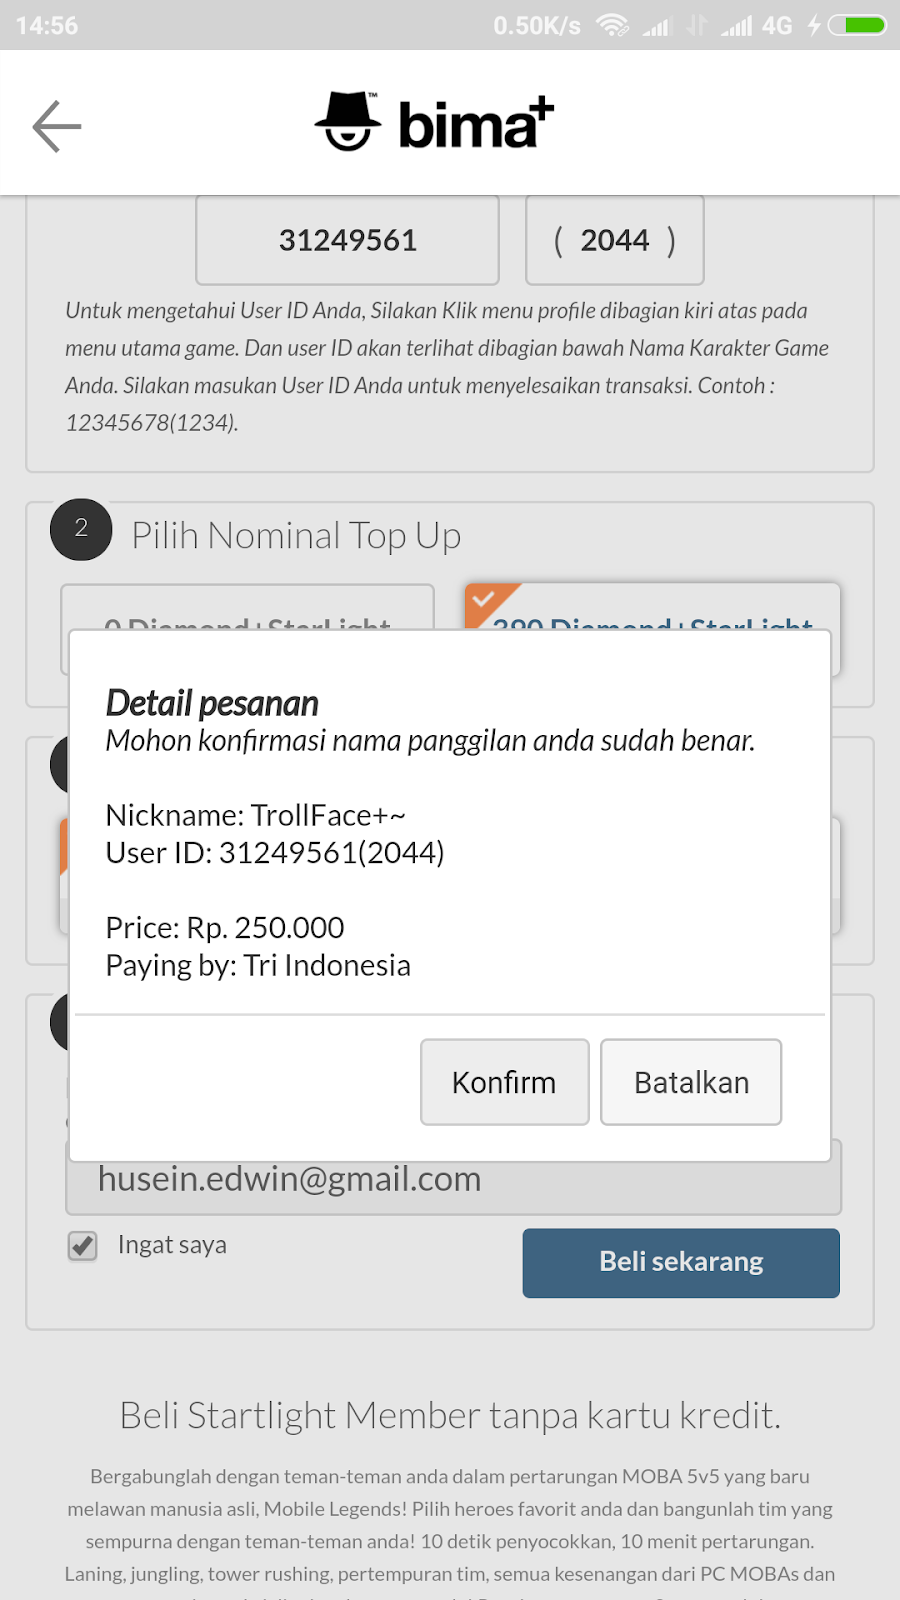 Cara Top Up Diamond Dan Starlight Ml Via Bima Pakai Pulsa Tri Irumira